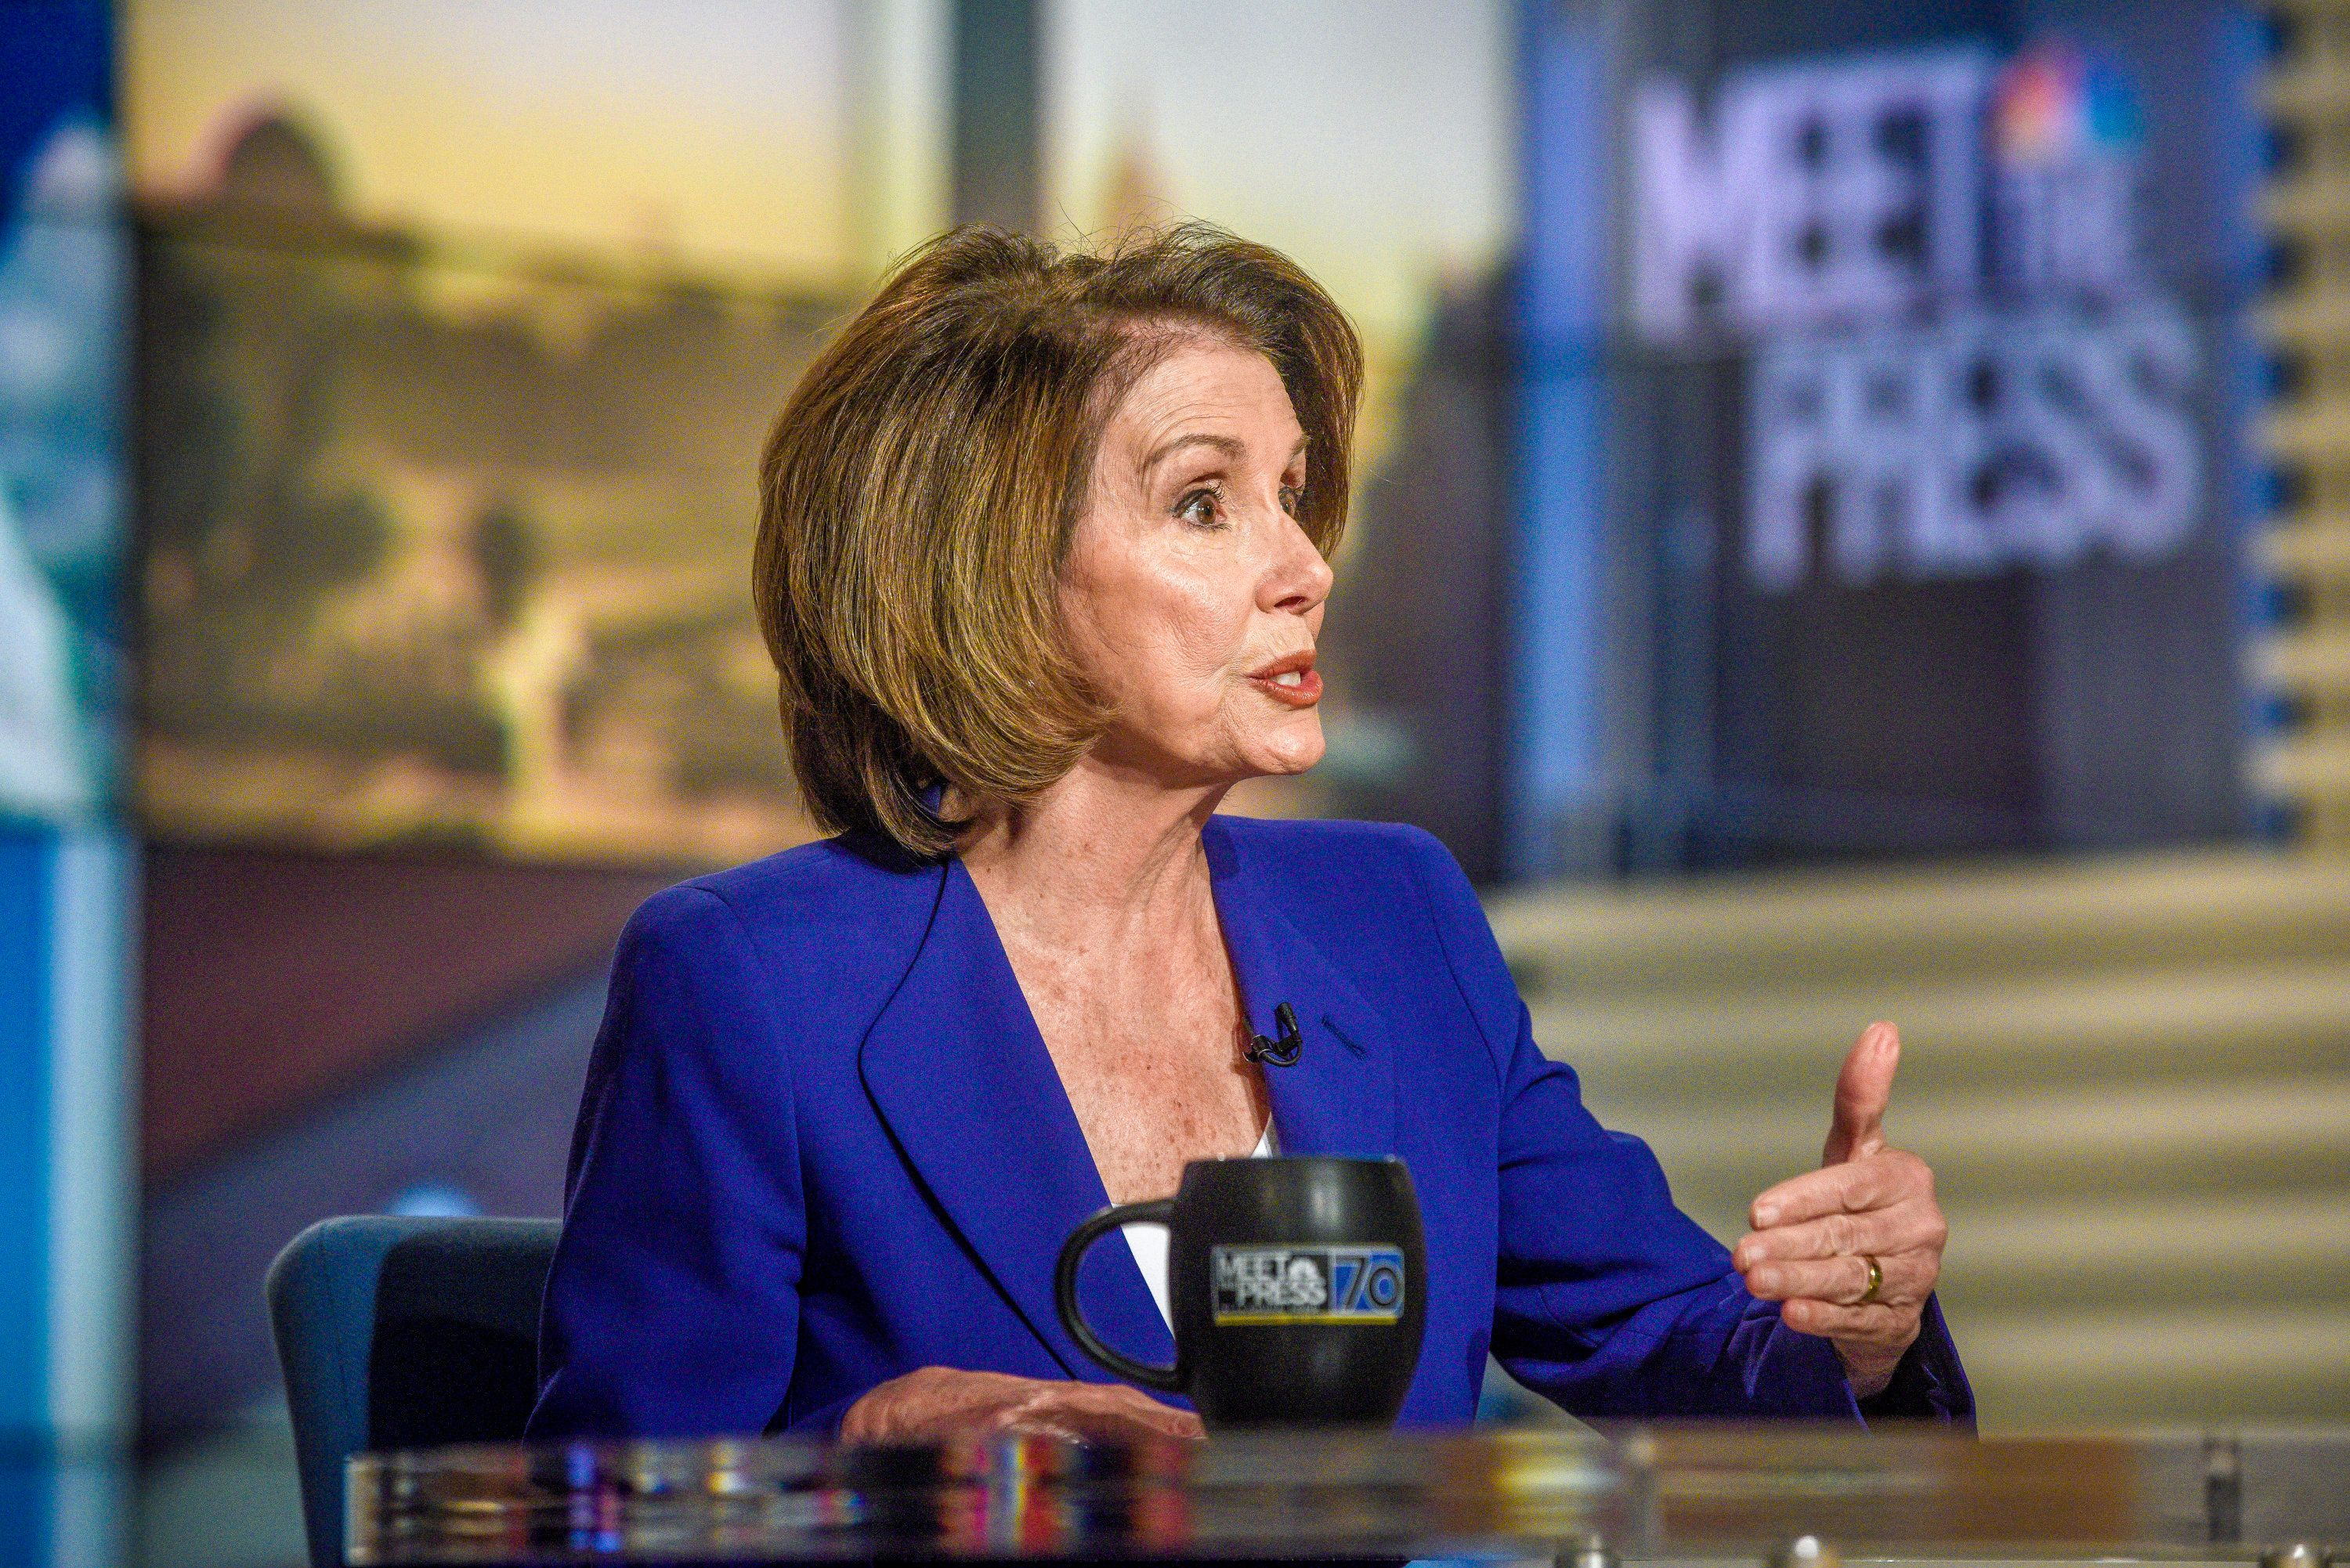 MEET THE PRESS -- Pictured: (l-r)   Rep. Nancy Pelosi (D-CA) appears on 'Meet the Press' in Washington, D.C., Sunday, Nov. 26, 2017.  (Photo by: William B. Plowman/NBC/NBC NewsWire via Getty Images)